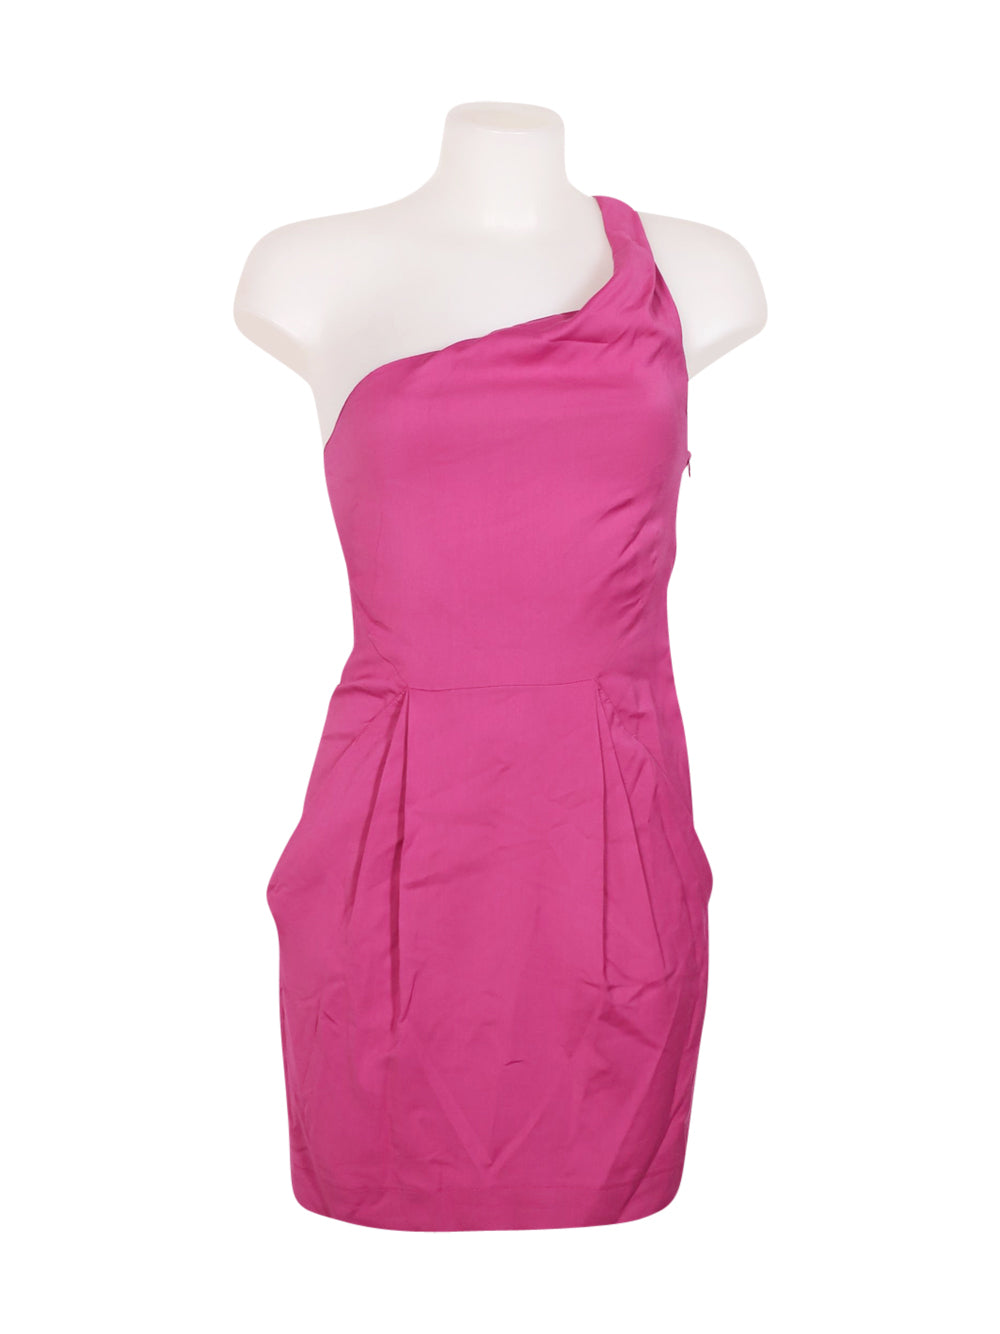 Front photo of Preloved Pinko Violet Woman's dress - size 8/S